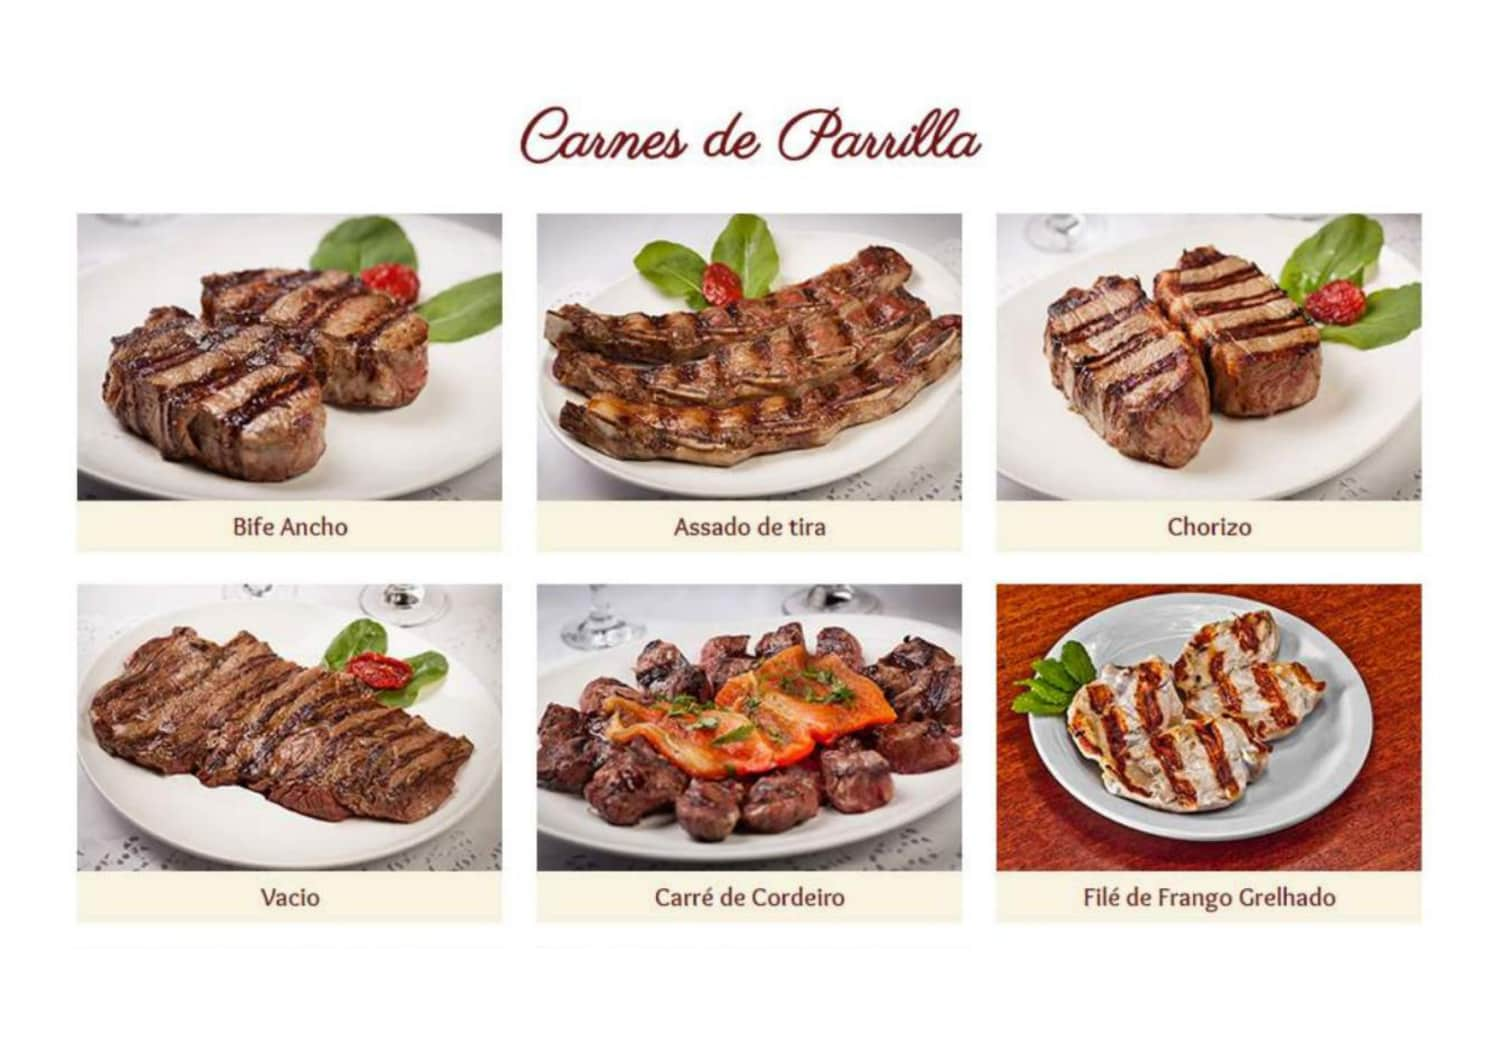 Menu do restaurante La Cabaña Parrilla - Página 1